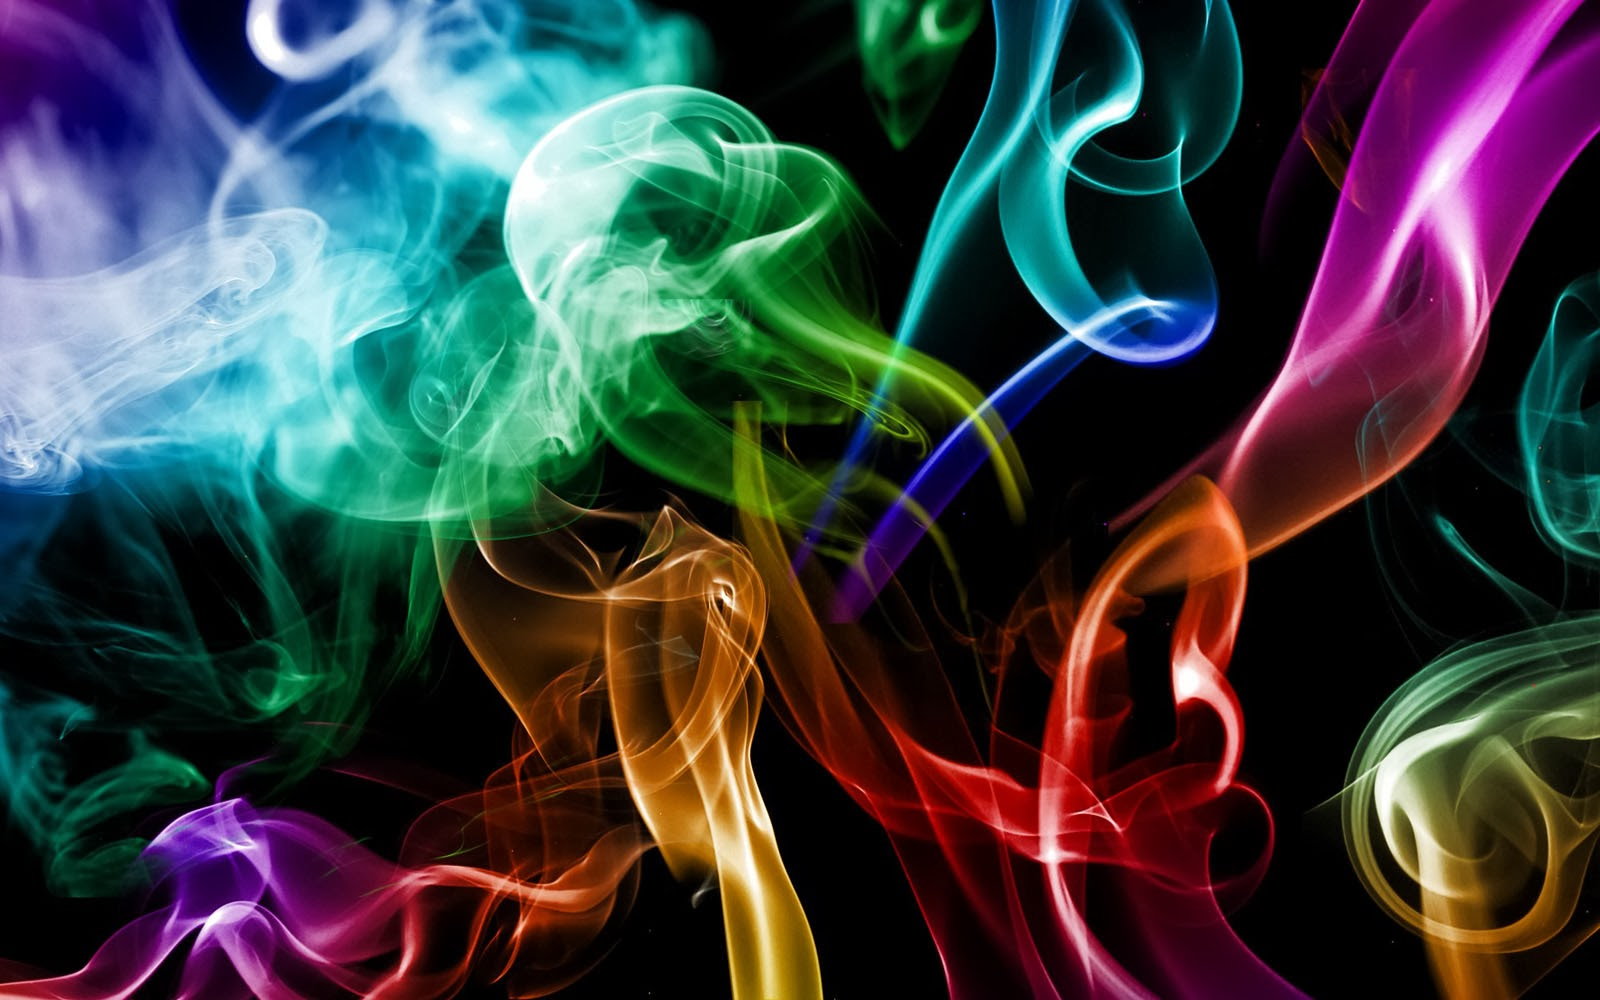 rainbow smoke wallpapers r - photo #2